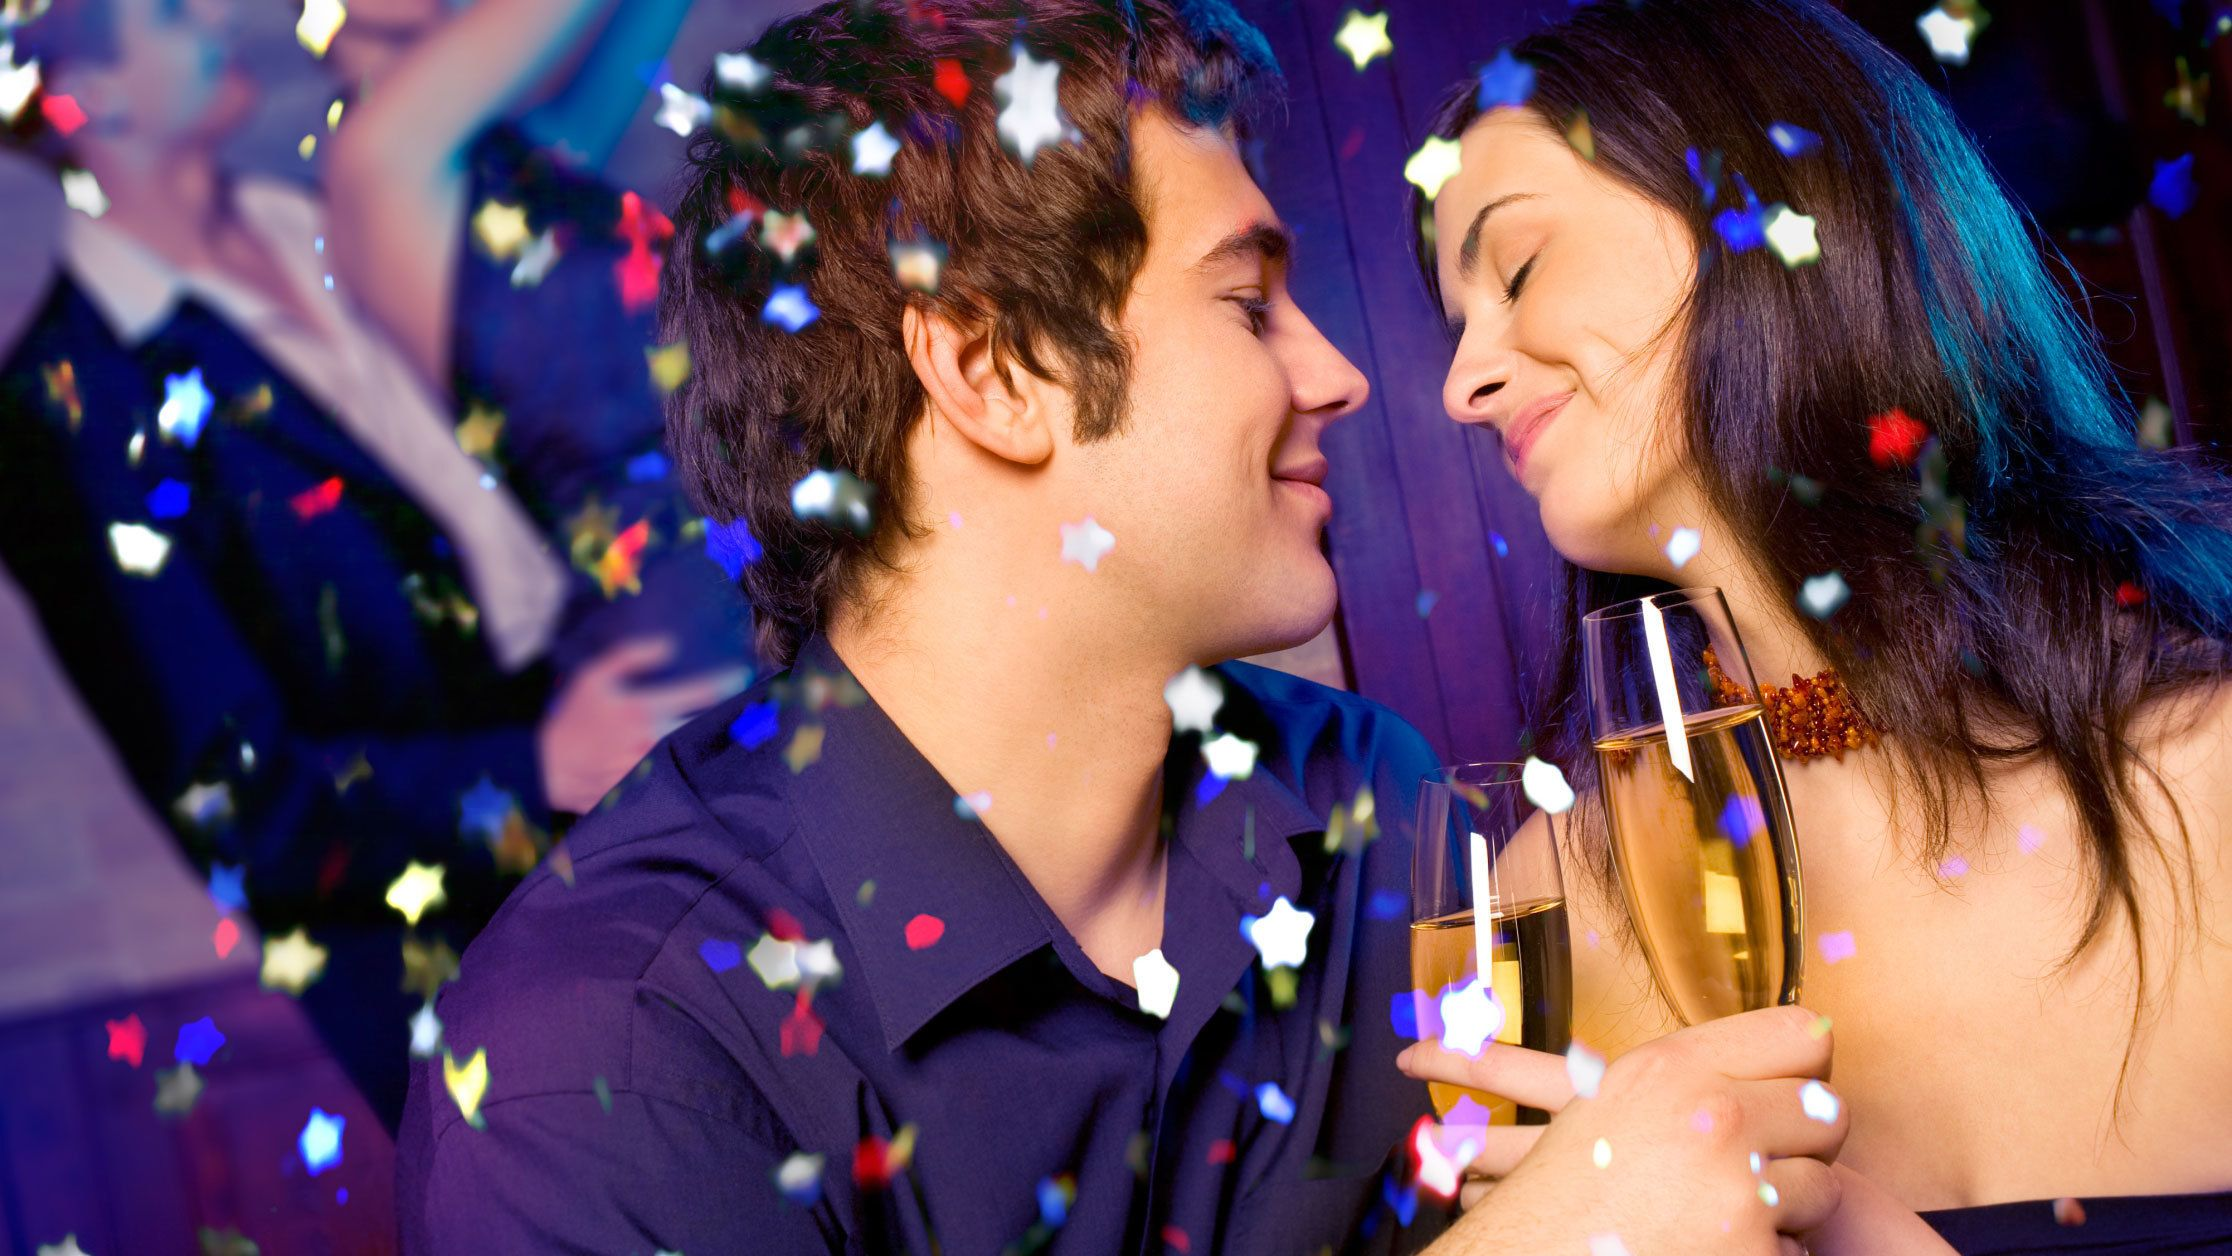 Two people toast during party with confetti falling